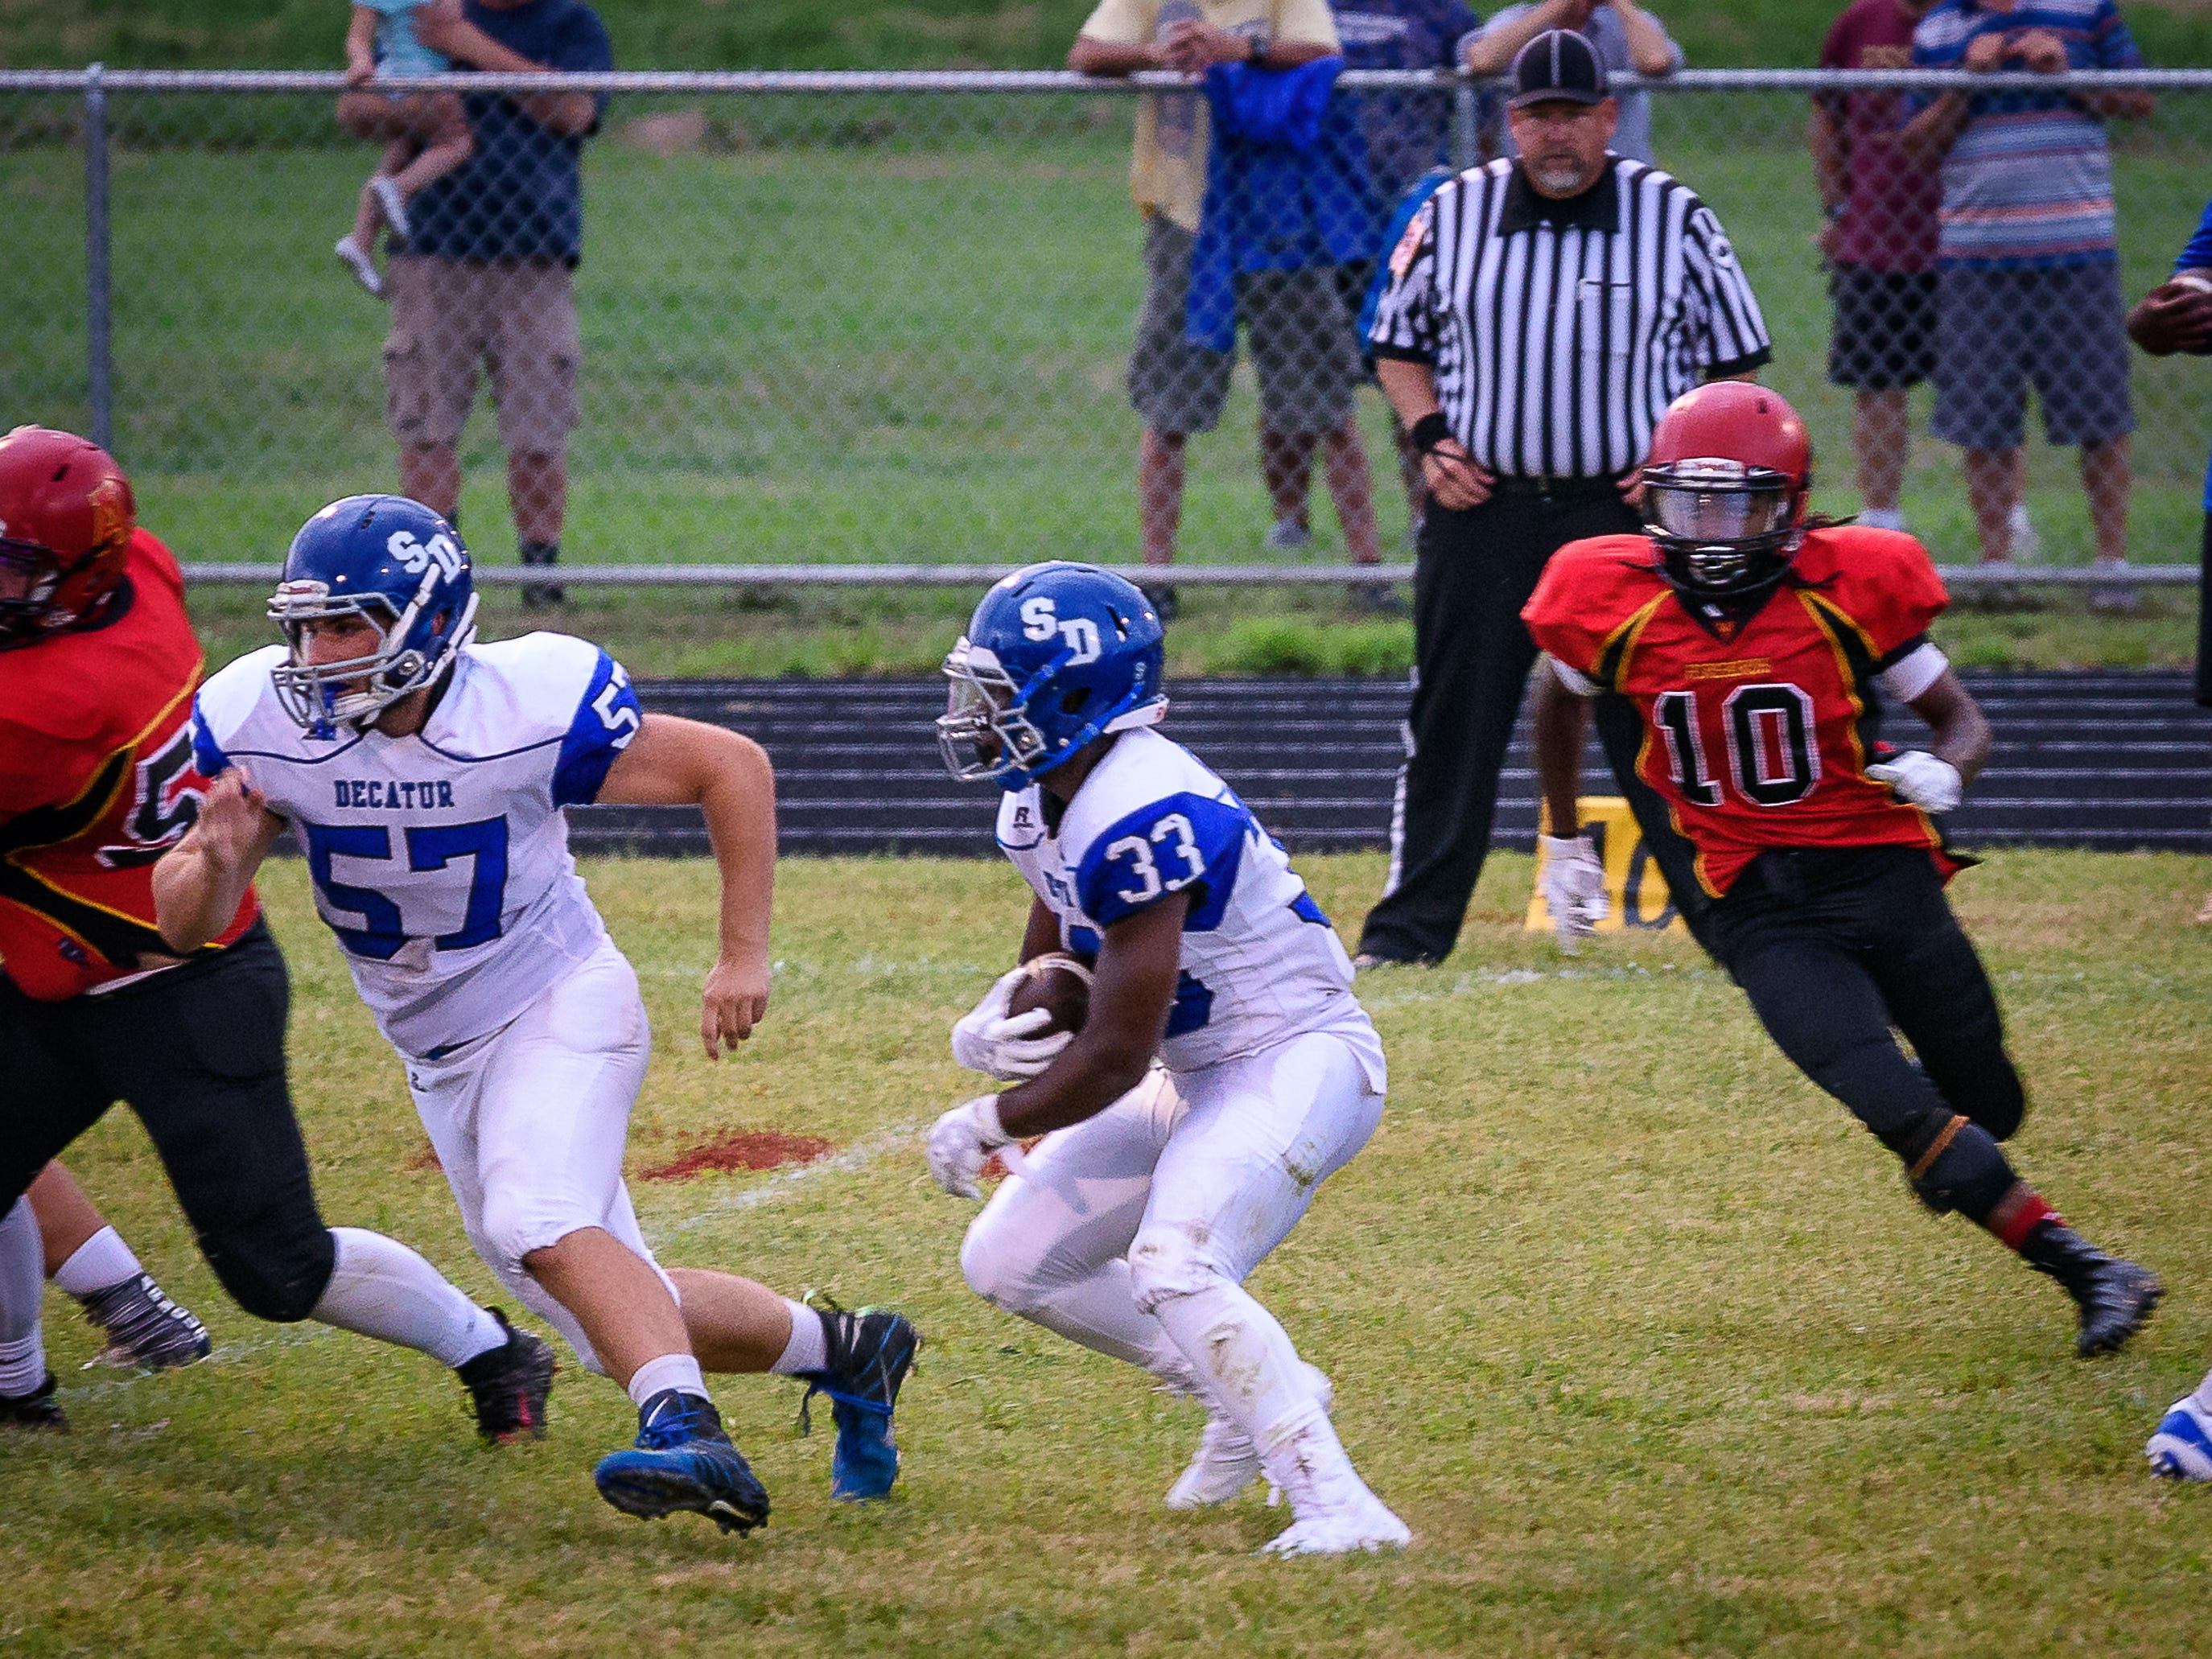 Decatur's Devin Waters, No. 33, tries to break through on his return run as teammate Conner Carpenter leads the way. Arcadia's William Scarborough gives chase.